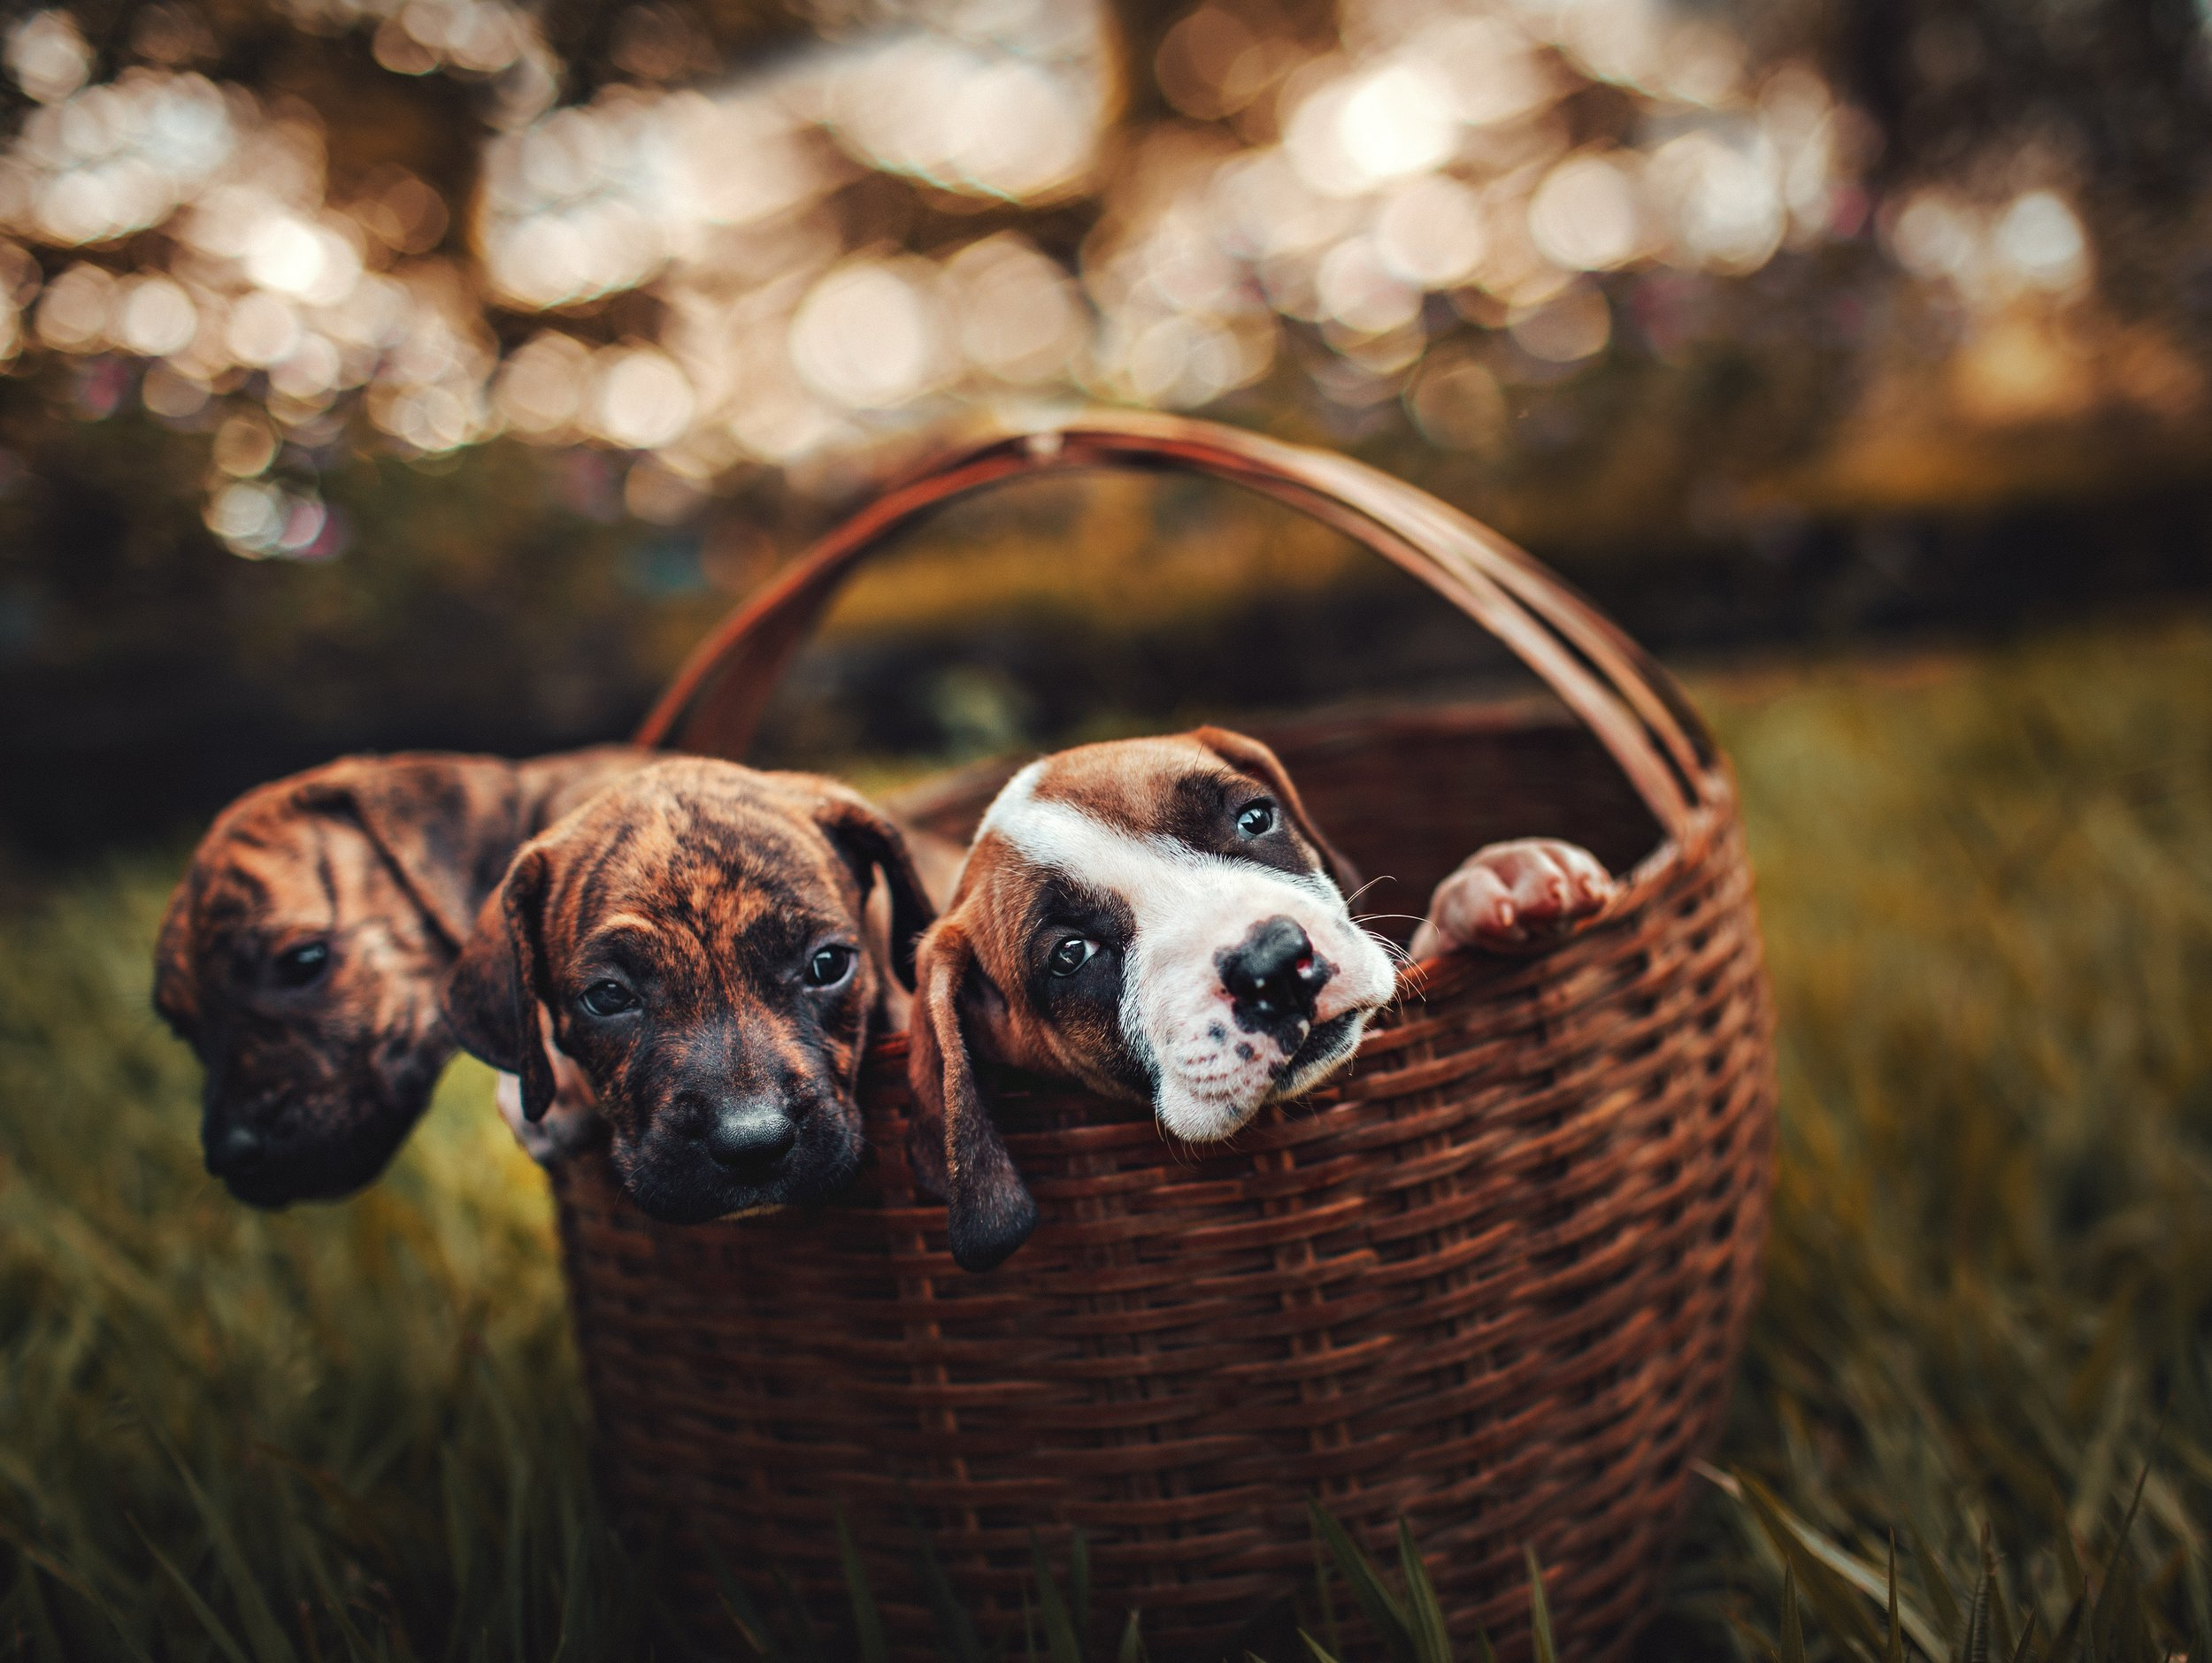 Three puppies lean their heads over the edge of the basket they are in, with a blurred background.